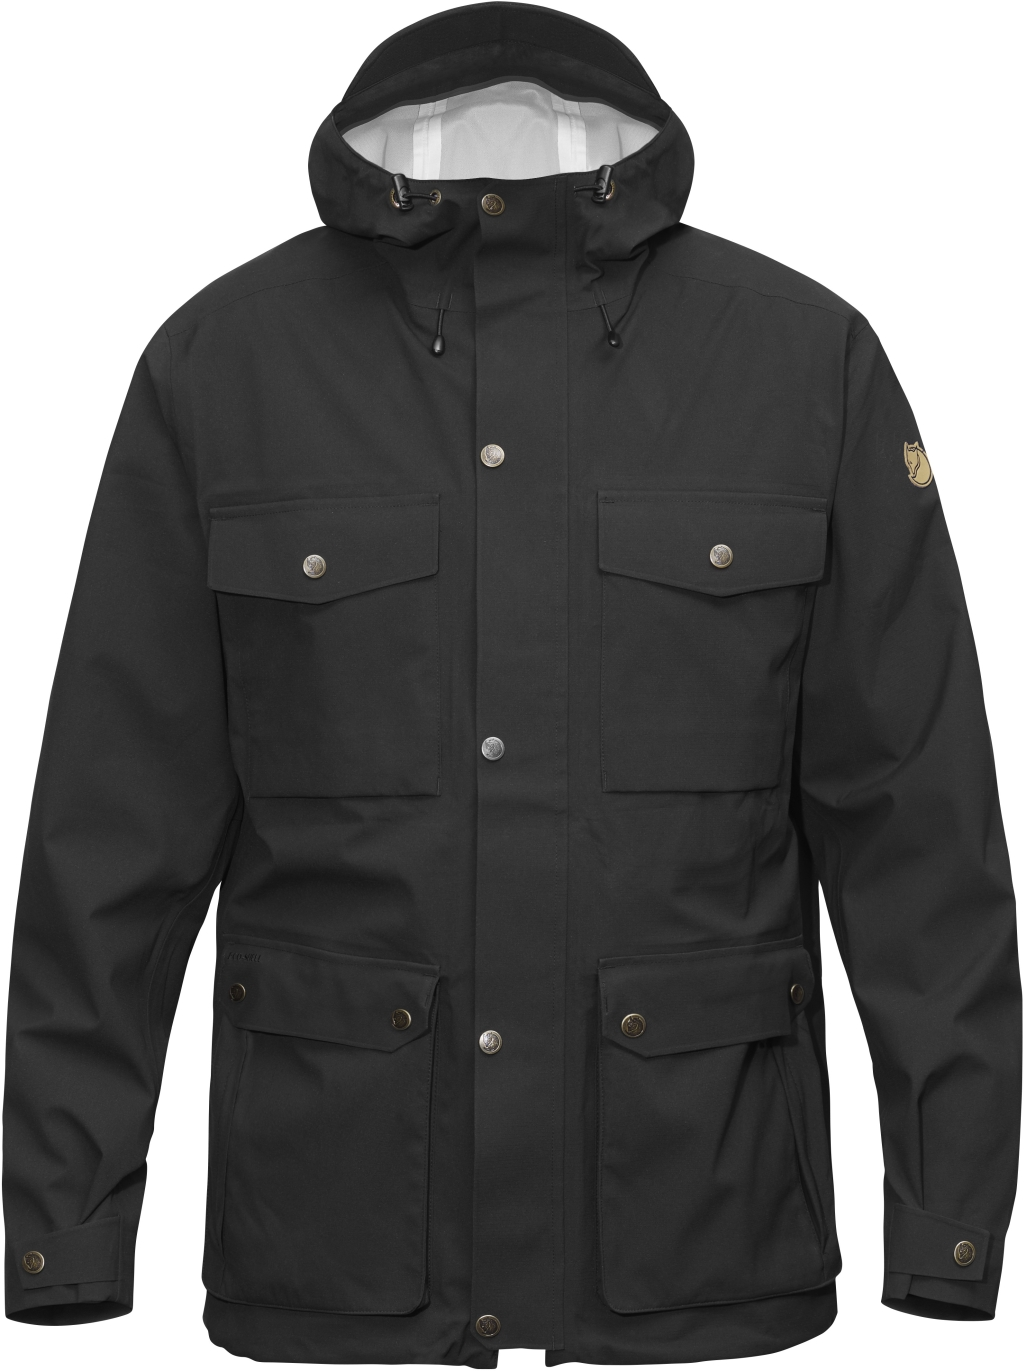 FjallRaven Ovik Eco-Shell Jacket Black-30